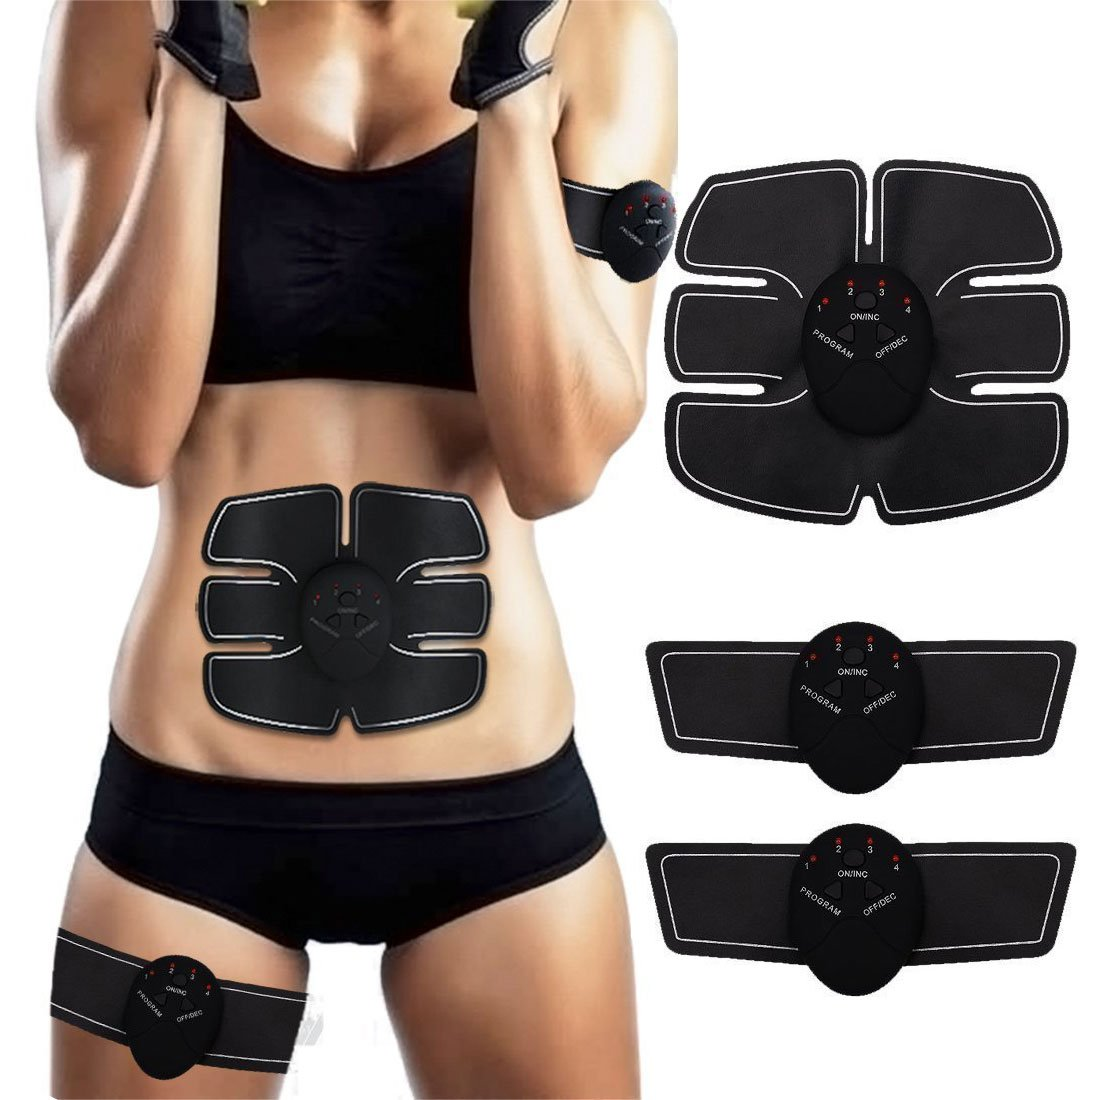 Smart Stimulator Muscle Sticker Arm Leg Massager Pad Slimming Shaping Exercise Fitness Gym Sports Training Gear Fitness & Body Building